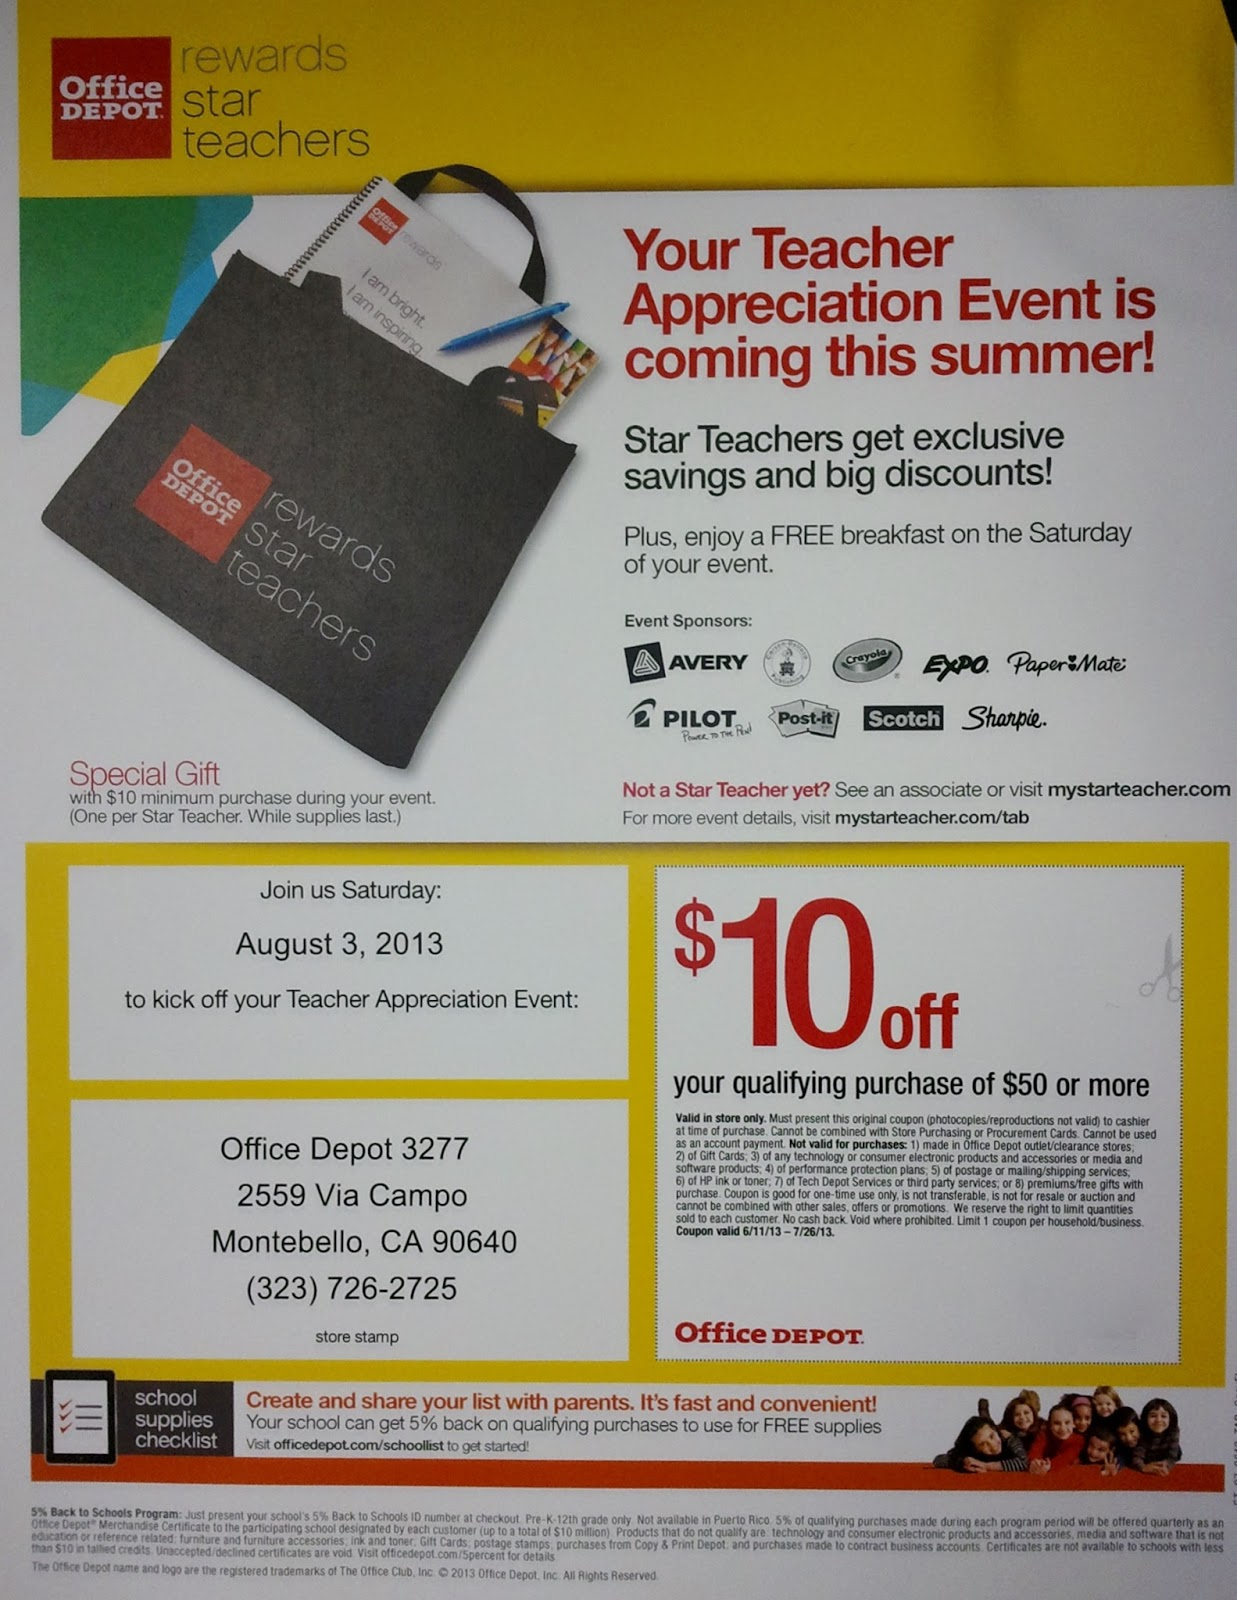 Teacher Resources - Office Depot.